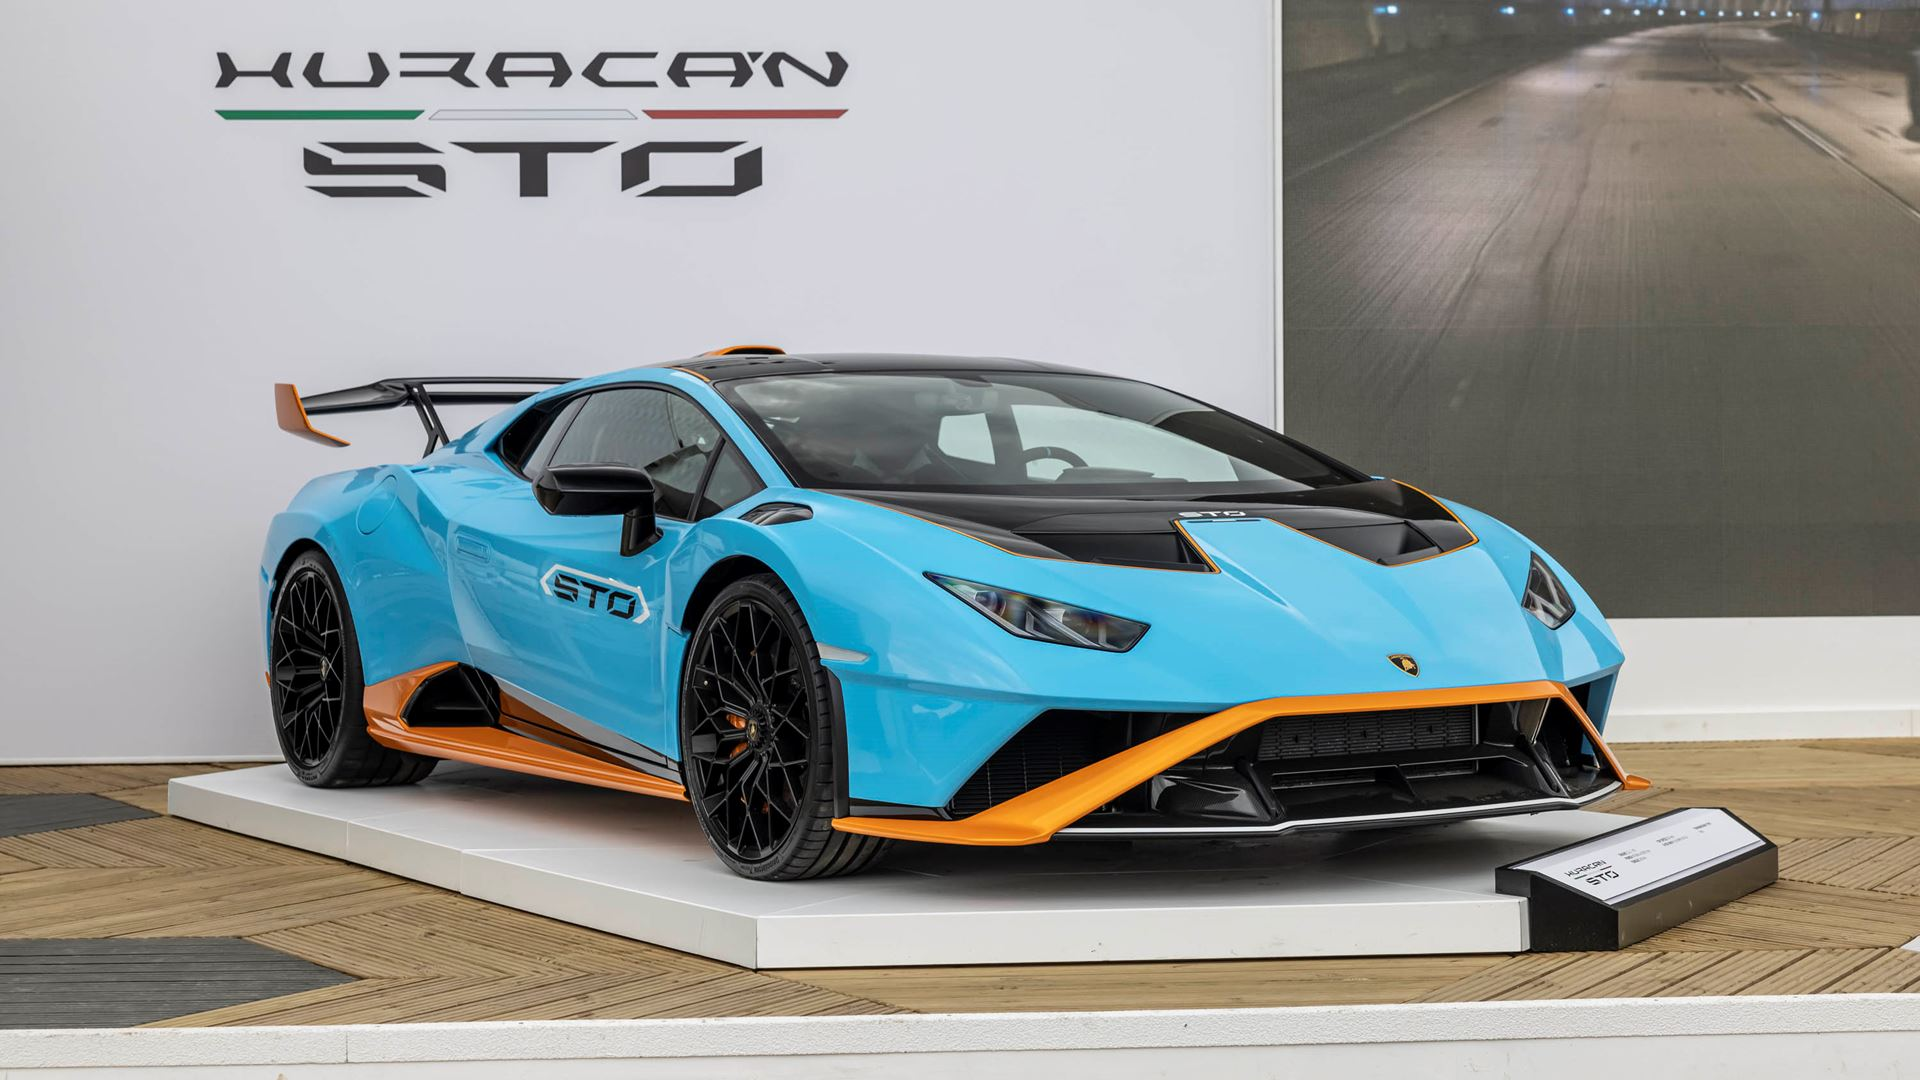 Automobili Lamborghini celebrates V12 and its Squadra Corse motorsport prowess on road and track, at Goodwood Festival of Speed 2021 - Image 7